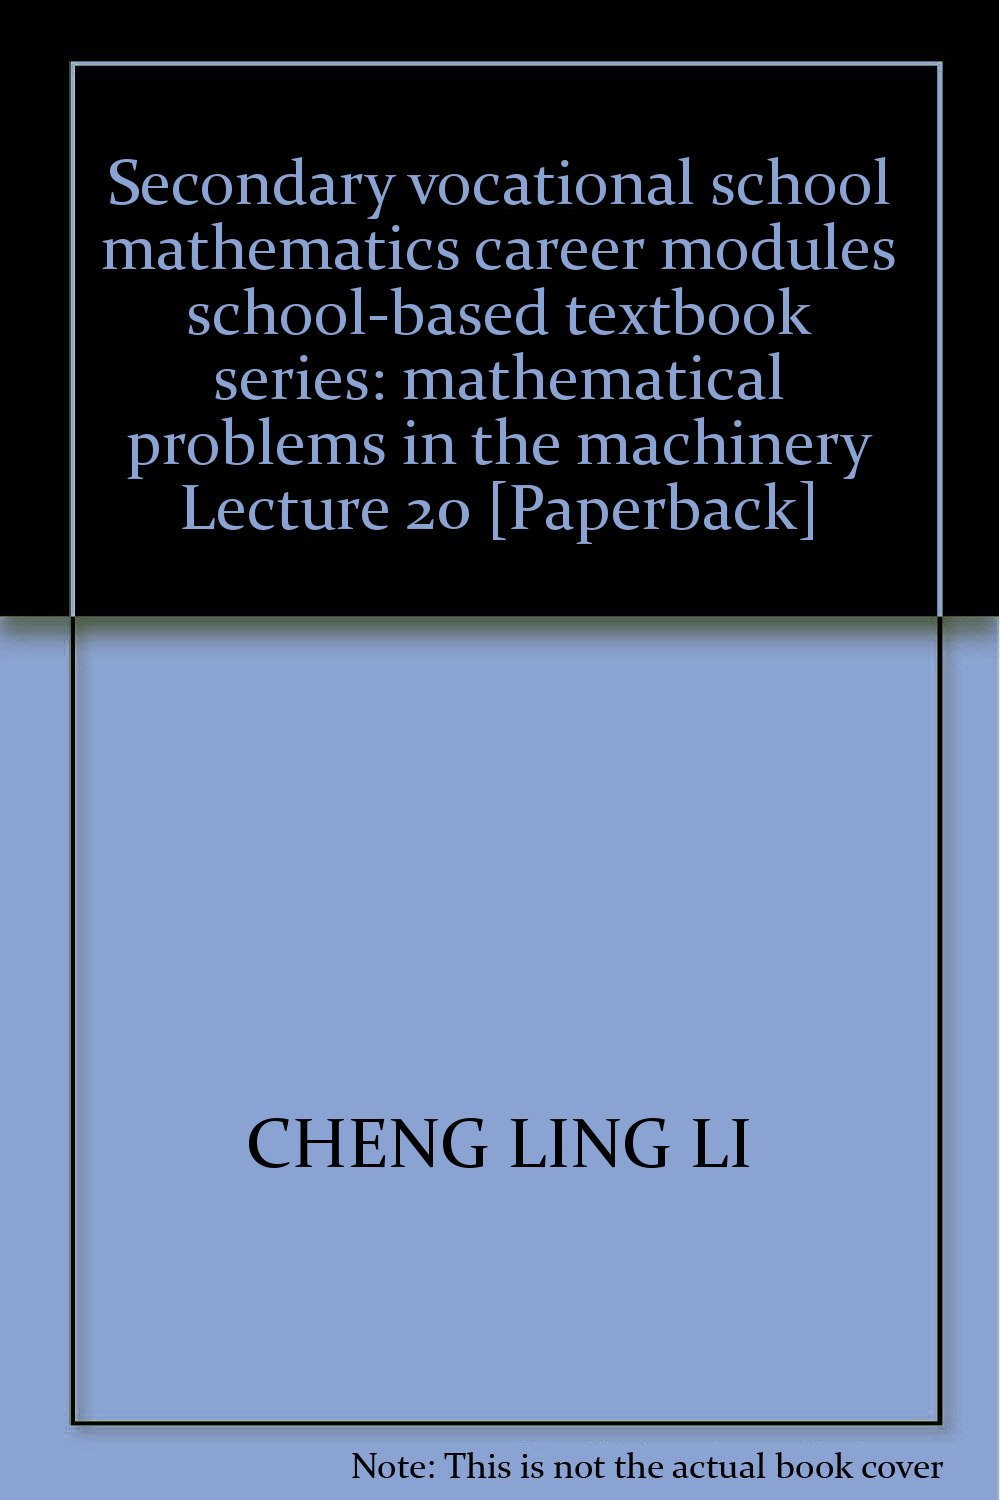 Download Secondary vocational school mathematics career modules school-based textbook series: mathematical problems in the machinery Lecture 20 [Paperback] ebook